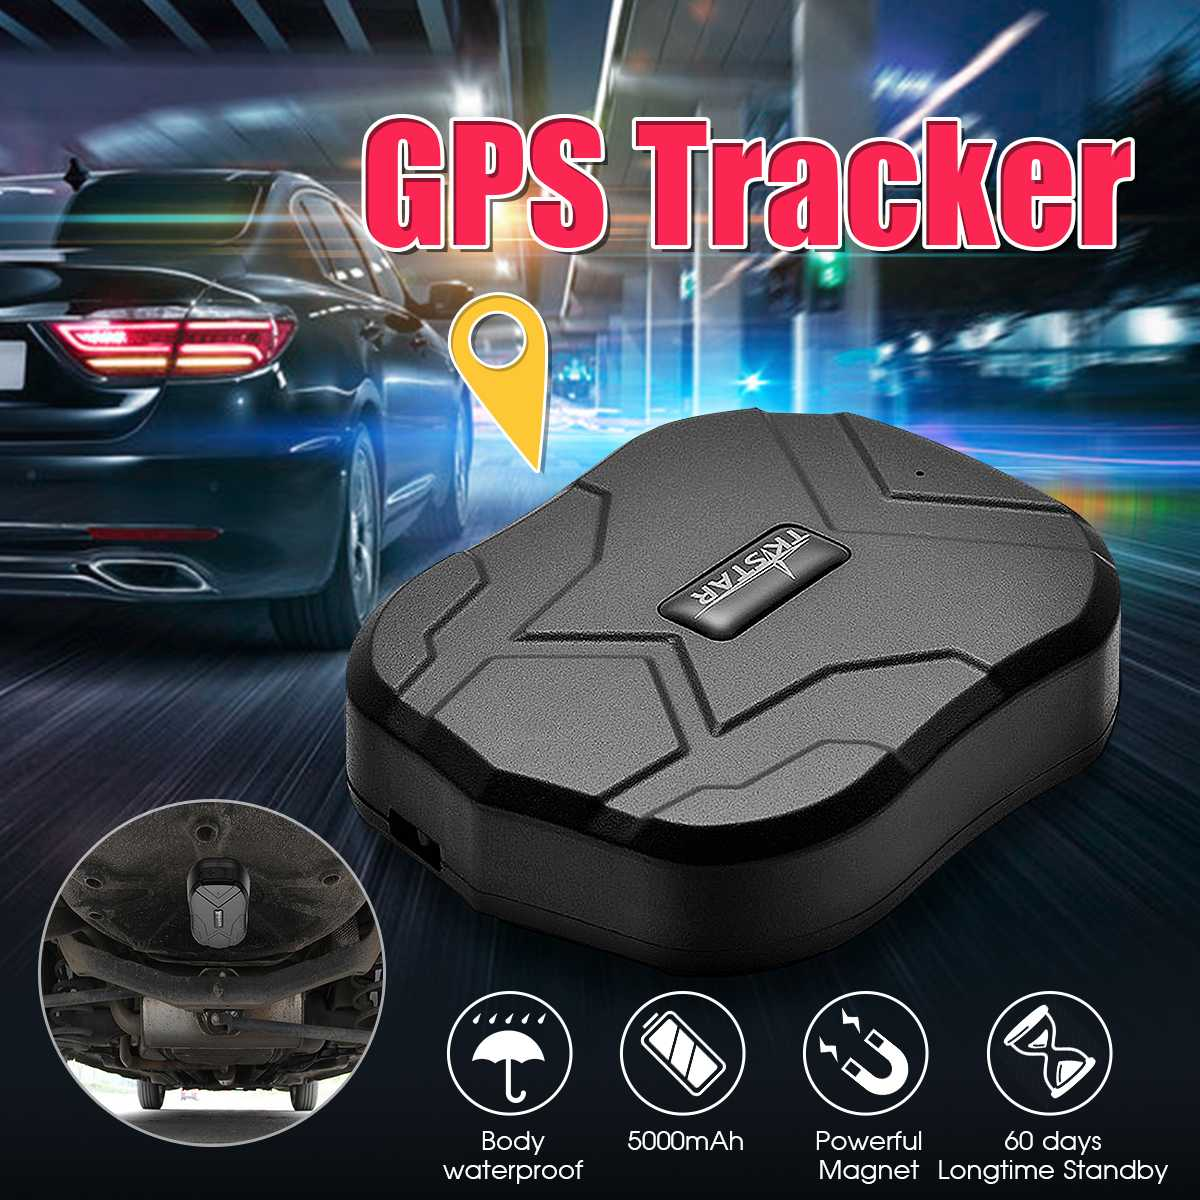 TK905 Waterproof GPS GSM GPRS Tracker Locator For Car Vehicle Pet Kid Old ManTK905 Waterproof GPS GSM GPRS Tracker Locator For Car Vehicle Pet Kid Old Man